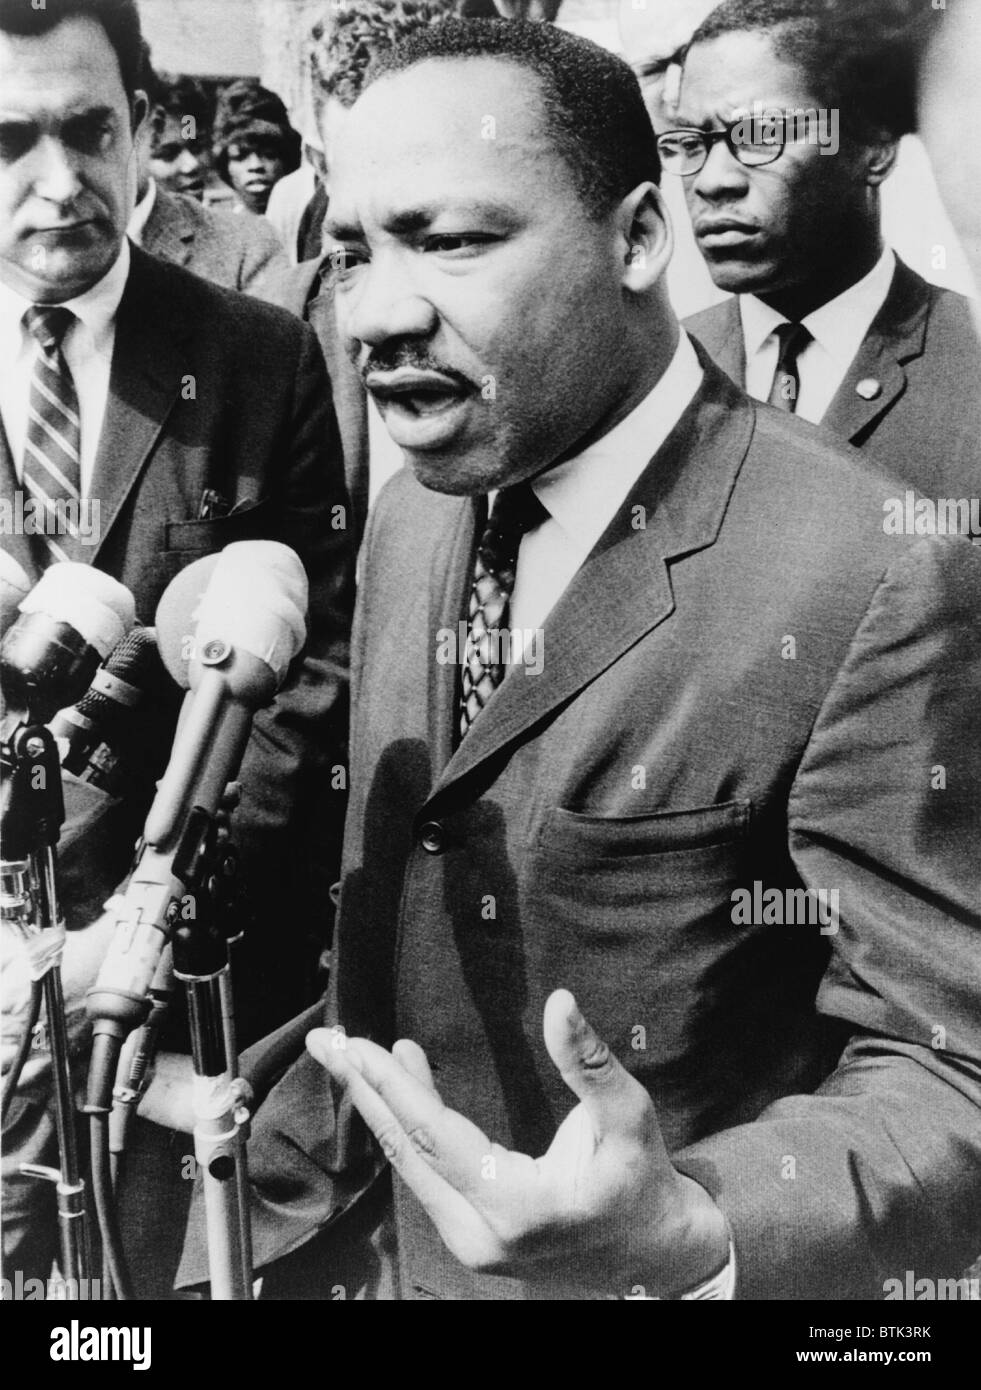 Martin Luther King, Jr. (1929-1968), speaking at an informal news conference in Selma, Alabama, 1965. - Stock Image